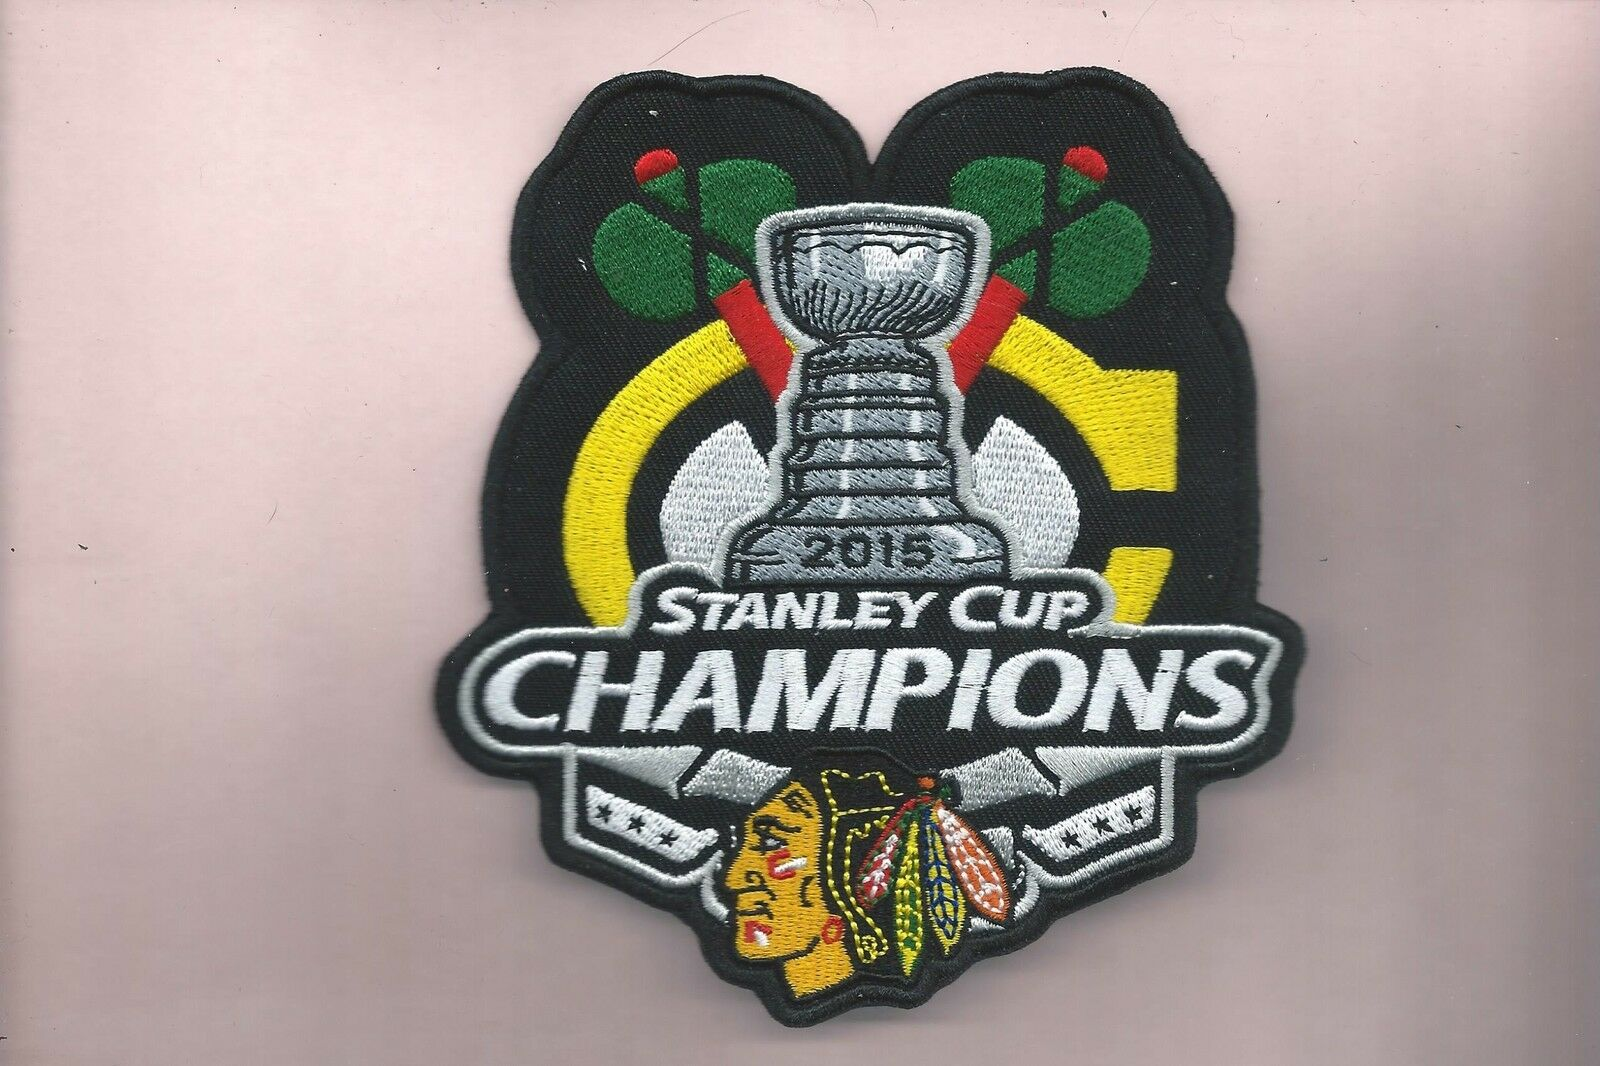 4 1 2 X 5 1 8 Inch Chicago Blackhawks SC Champions Iron on Patch ... ec2527a555b9